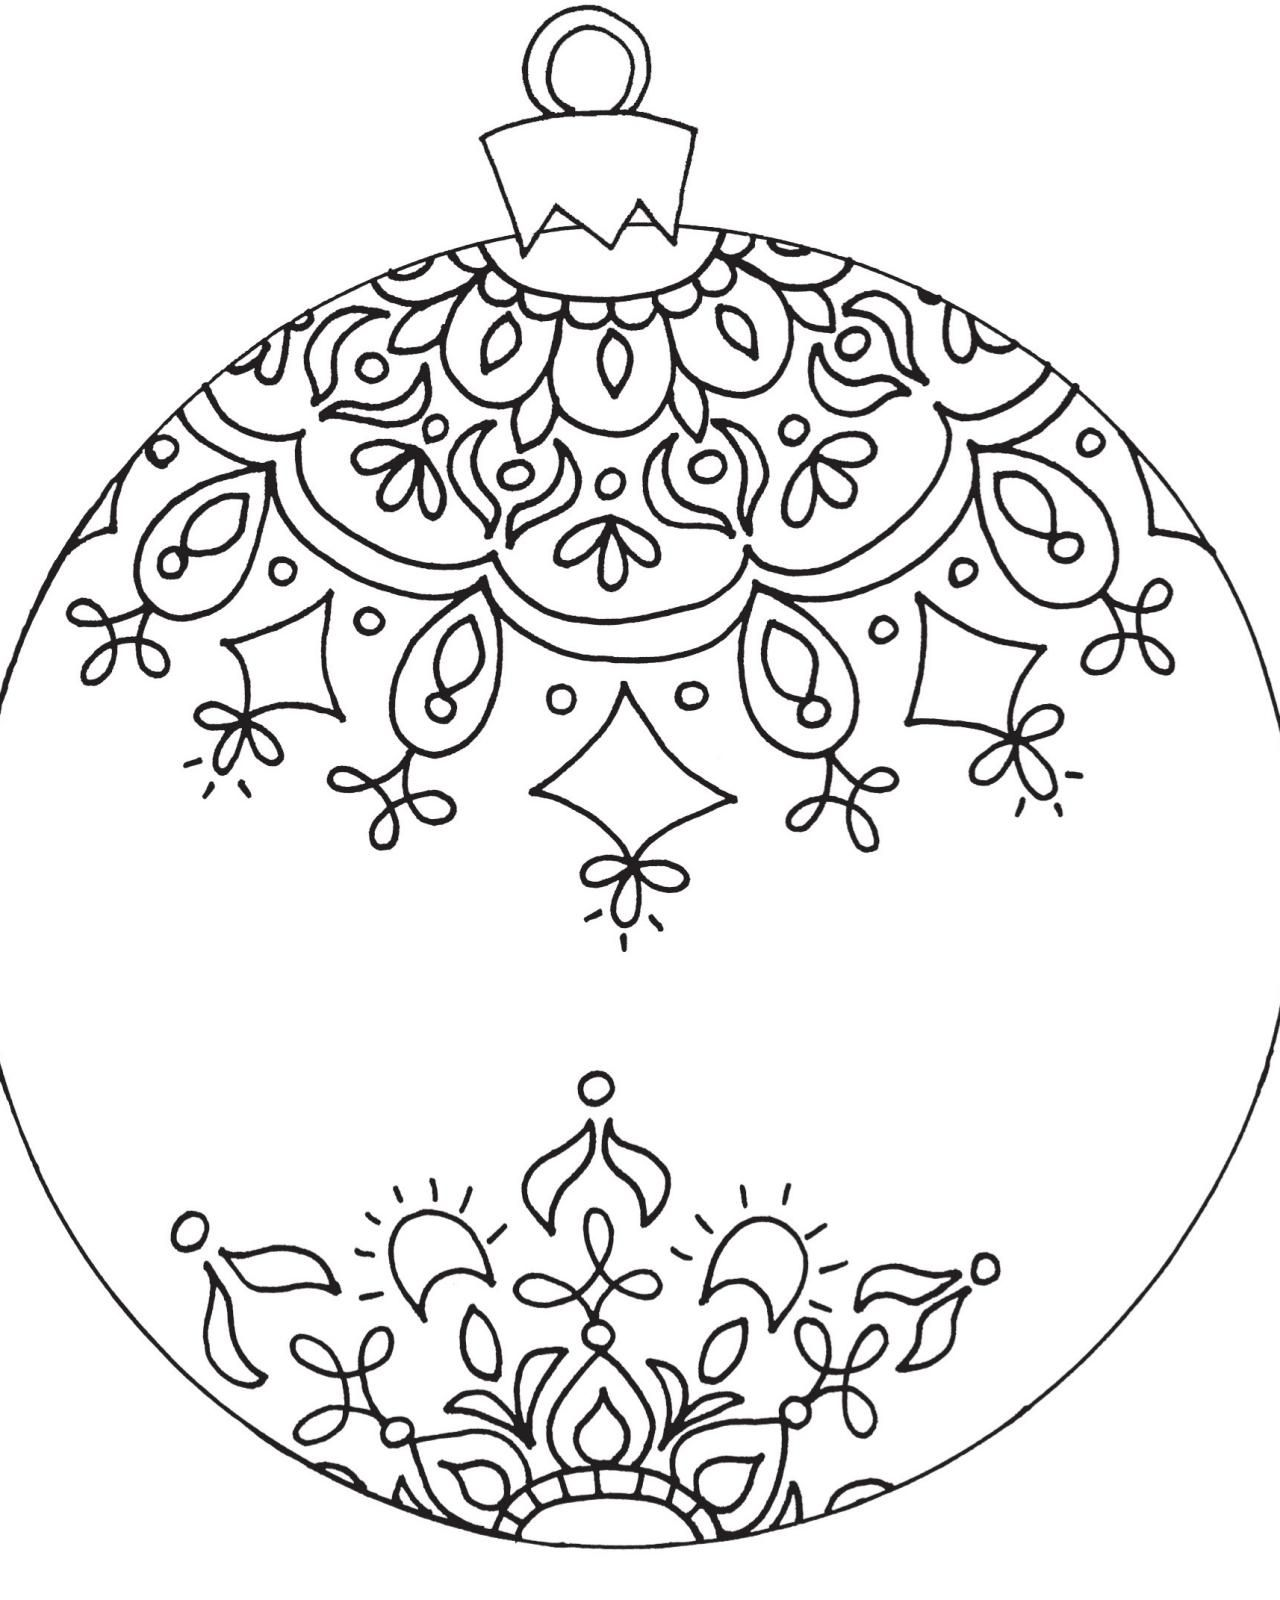 Free Printable Coloring Pages for Adults | Diy craft projects, Craft ...